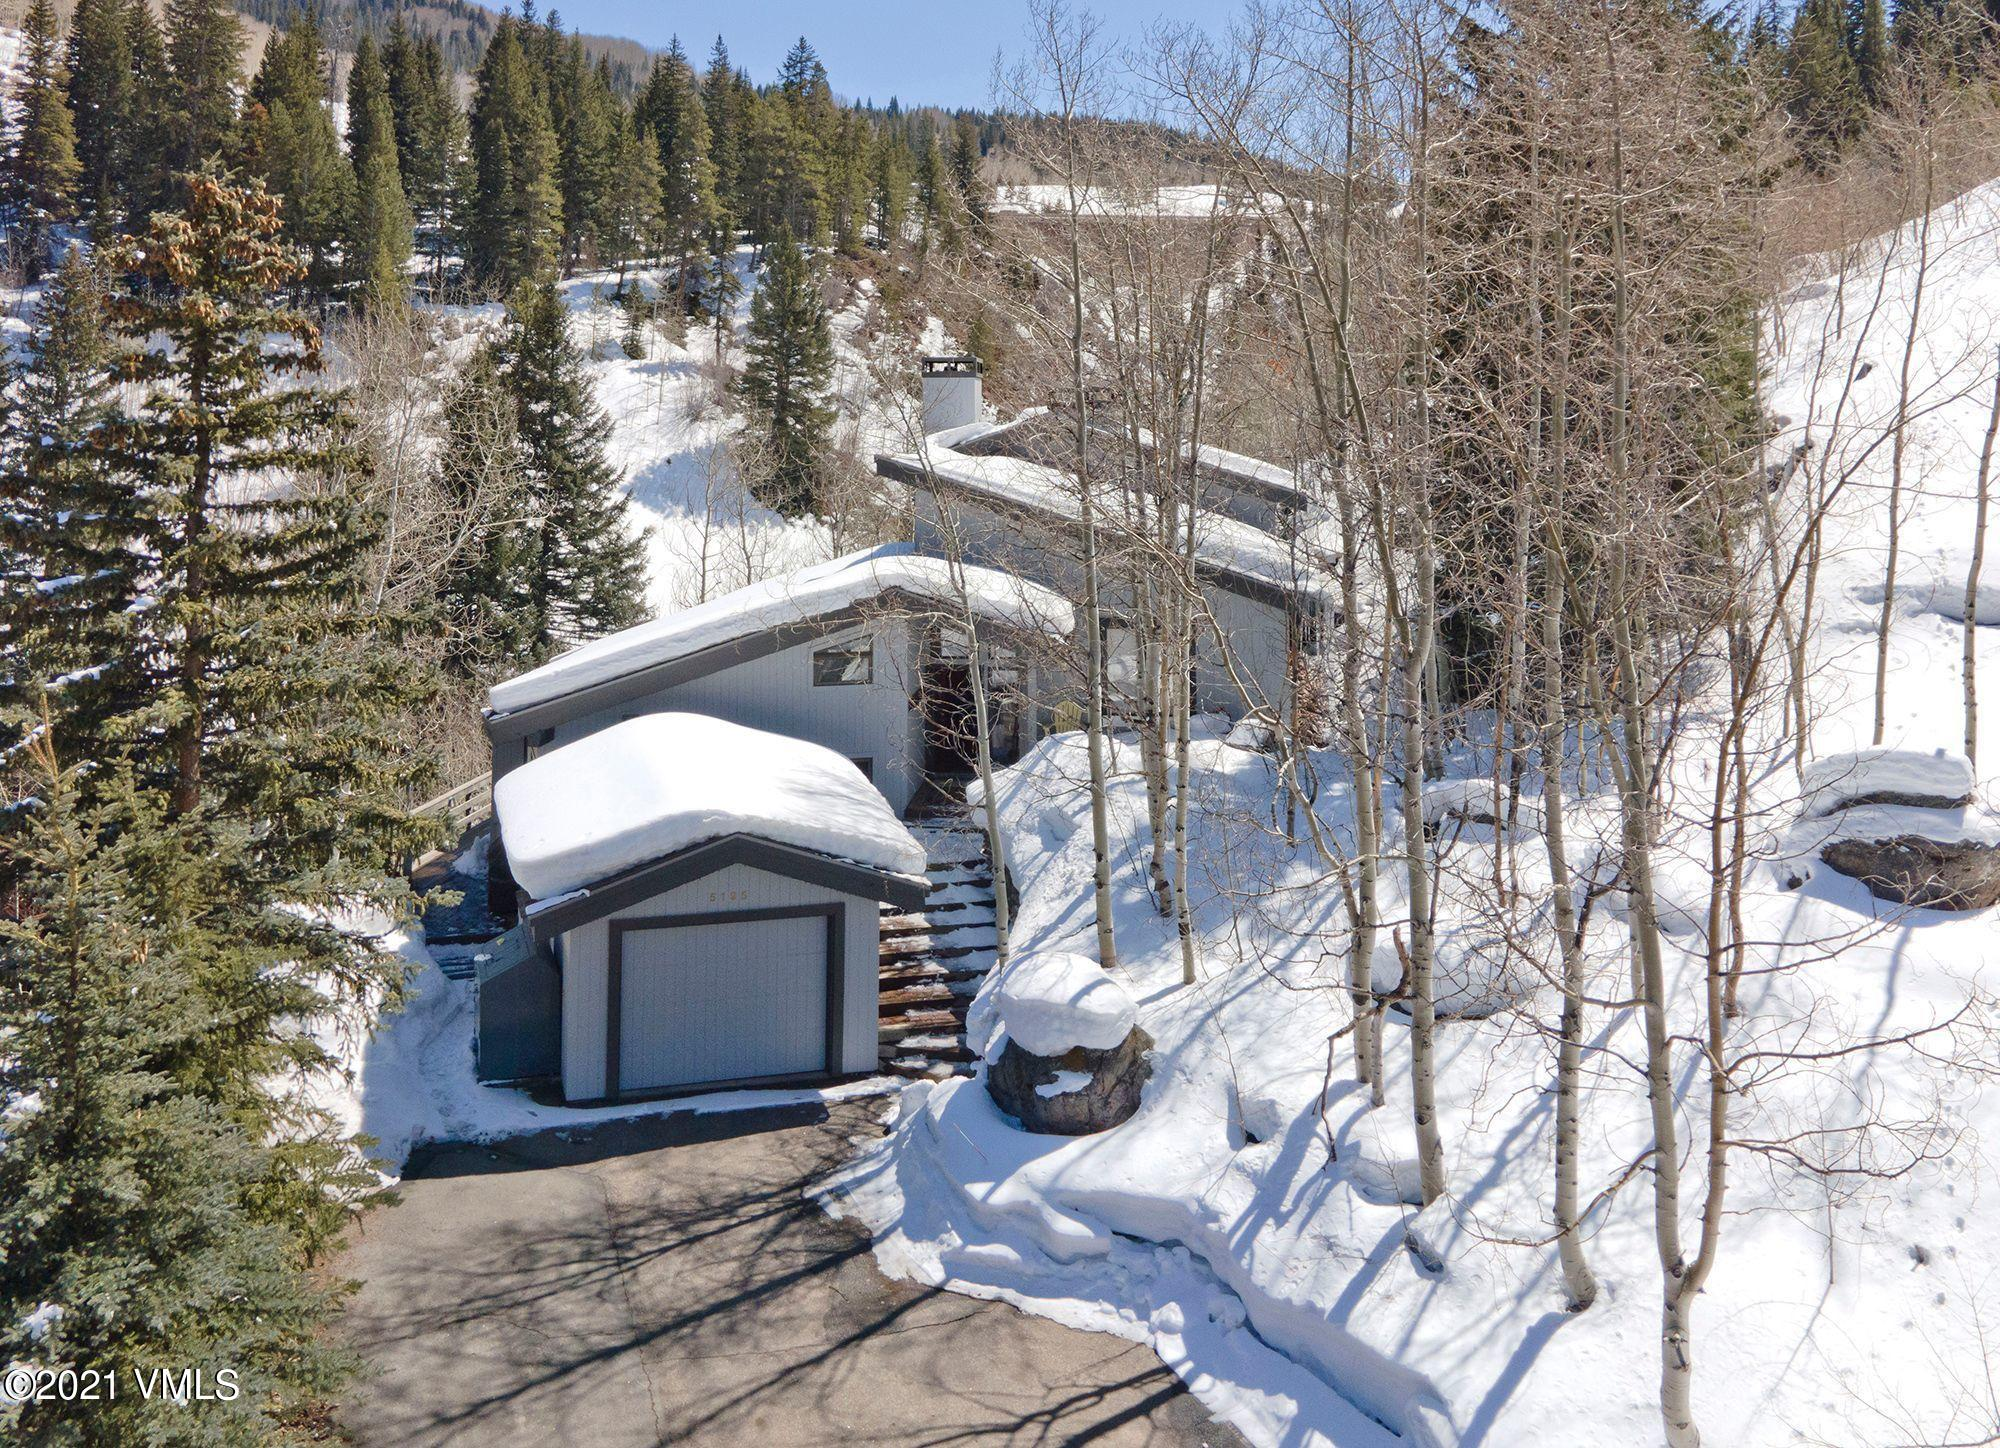 Charming and lovingly cared for home in East Vail. Many upgrades to this property have been added/done in recent years. Kitchen area has 2 side x side Refrigerator/freezers and there are 2 washer and dryer sets.Very private with wonderful views! Over 9000 s/f can be built on this .95 acre lot.